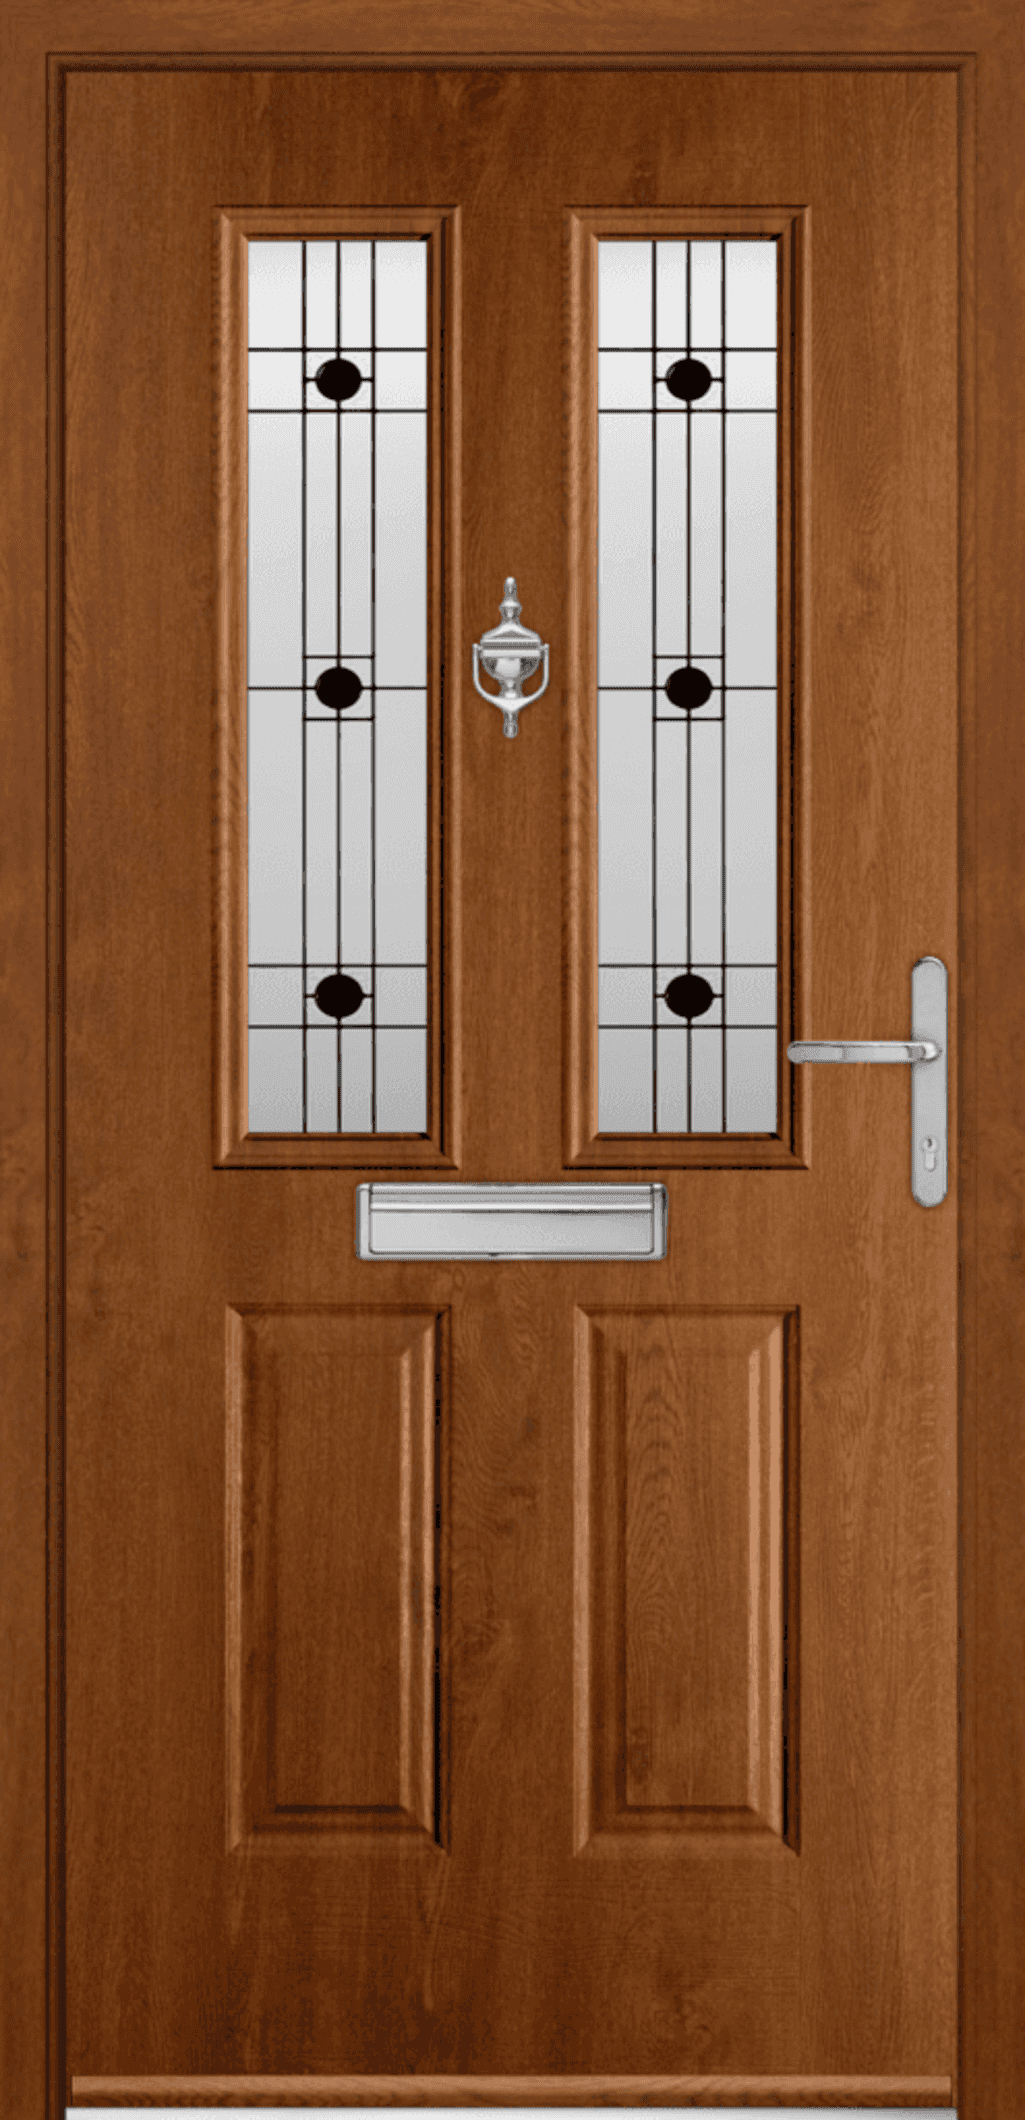 Composite doors in many styles | Endurance®